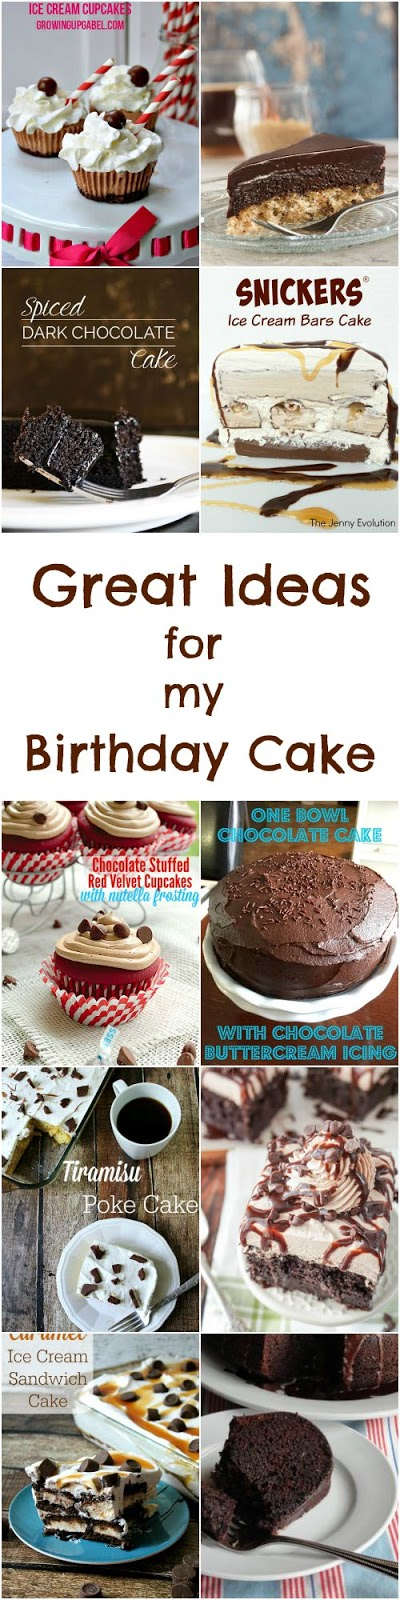 Great Ideas for My Birthday Cake:  A round-up of 10 of my favorite cakes, shared on Great Idea Thursdays link party, that I would love to have as my birthday cake.